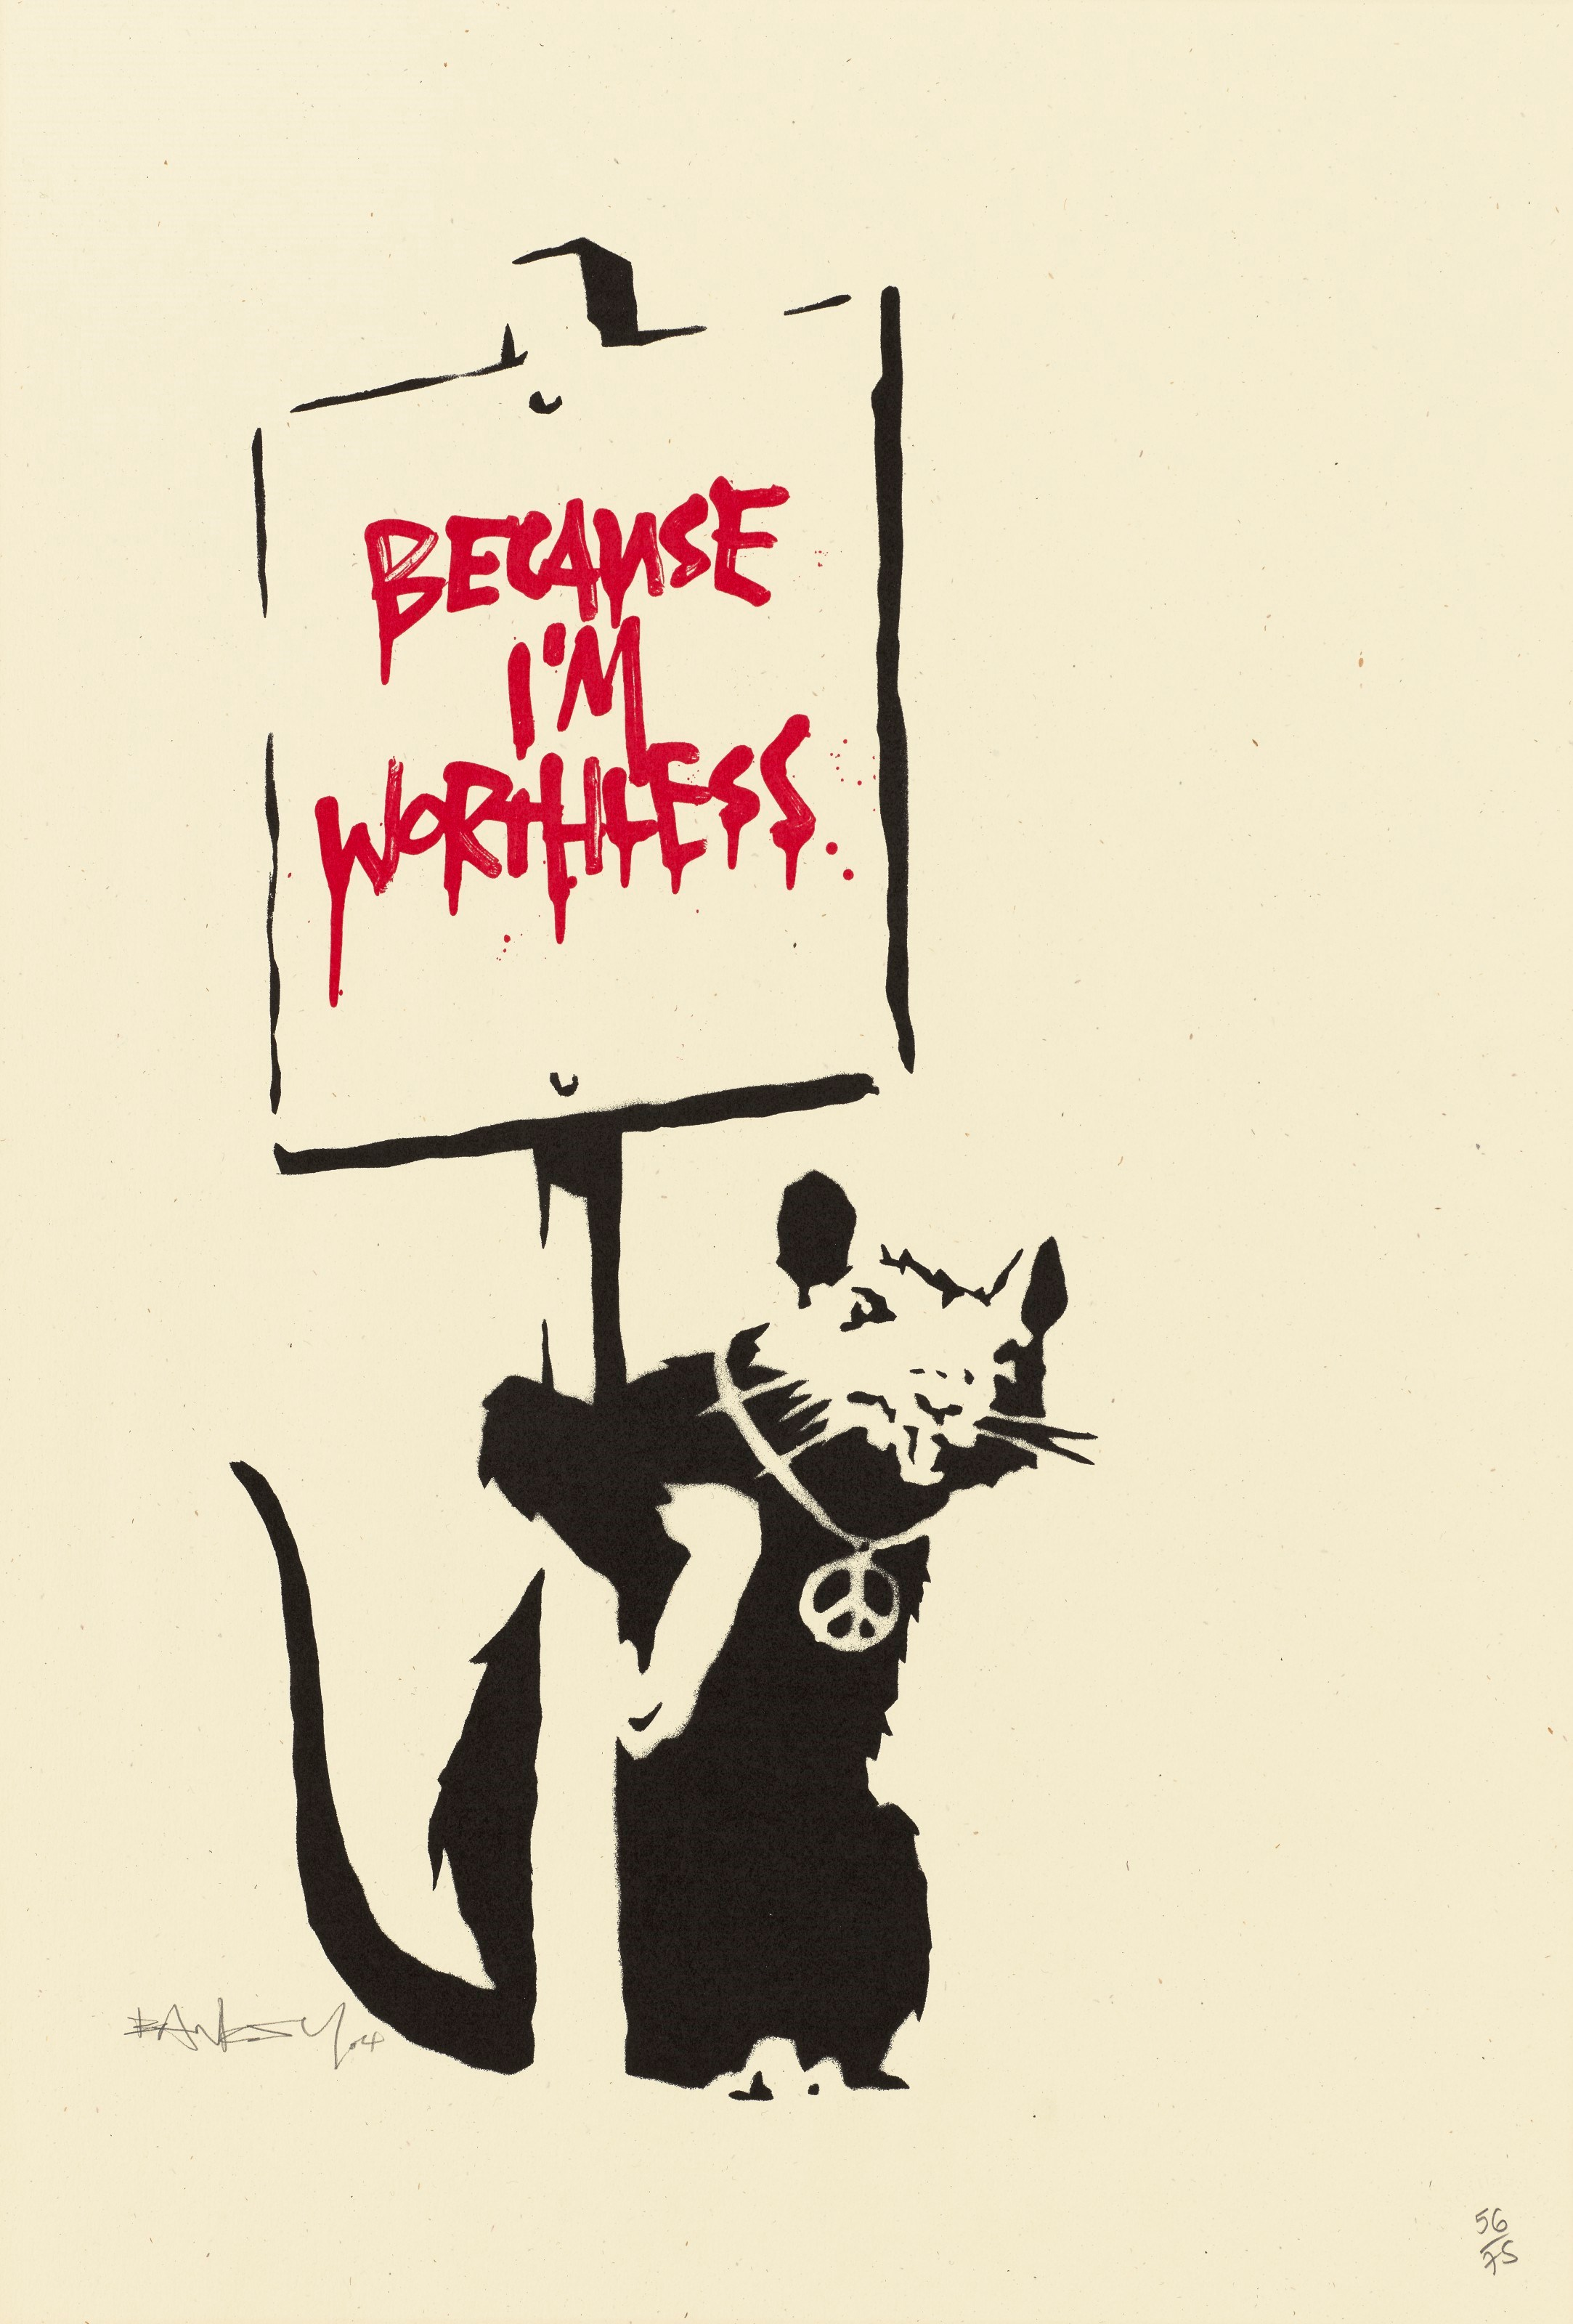 Banksy, Because I'm Worthless, 2004. Screenprint in colours. Sheet 498 x 350  mm. Estimate £80,000-120,000. Offered inBanksy I can't believe you morons actually buy this sht, 9-23 September 2021, Online